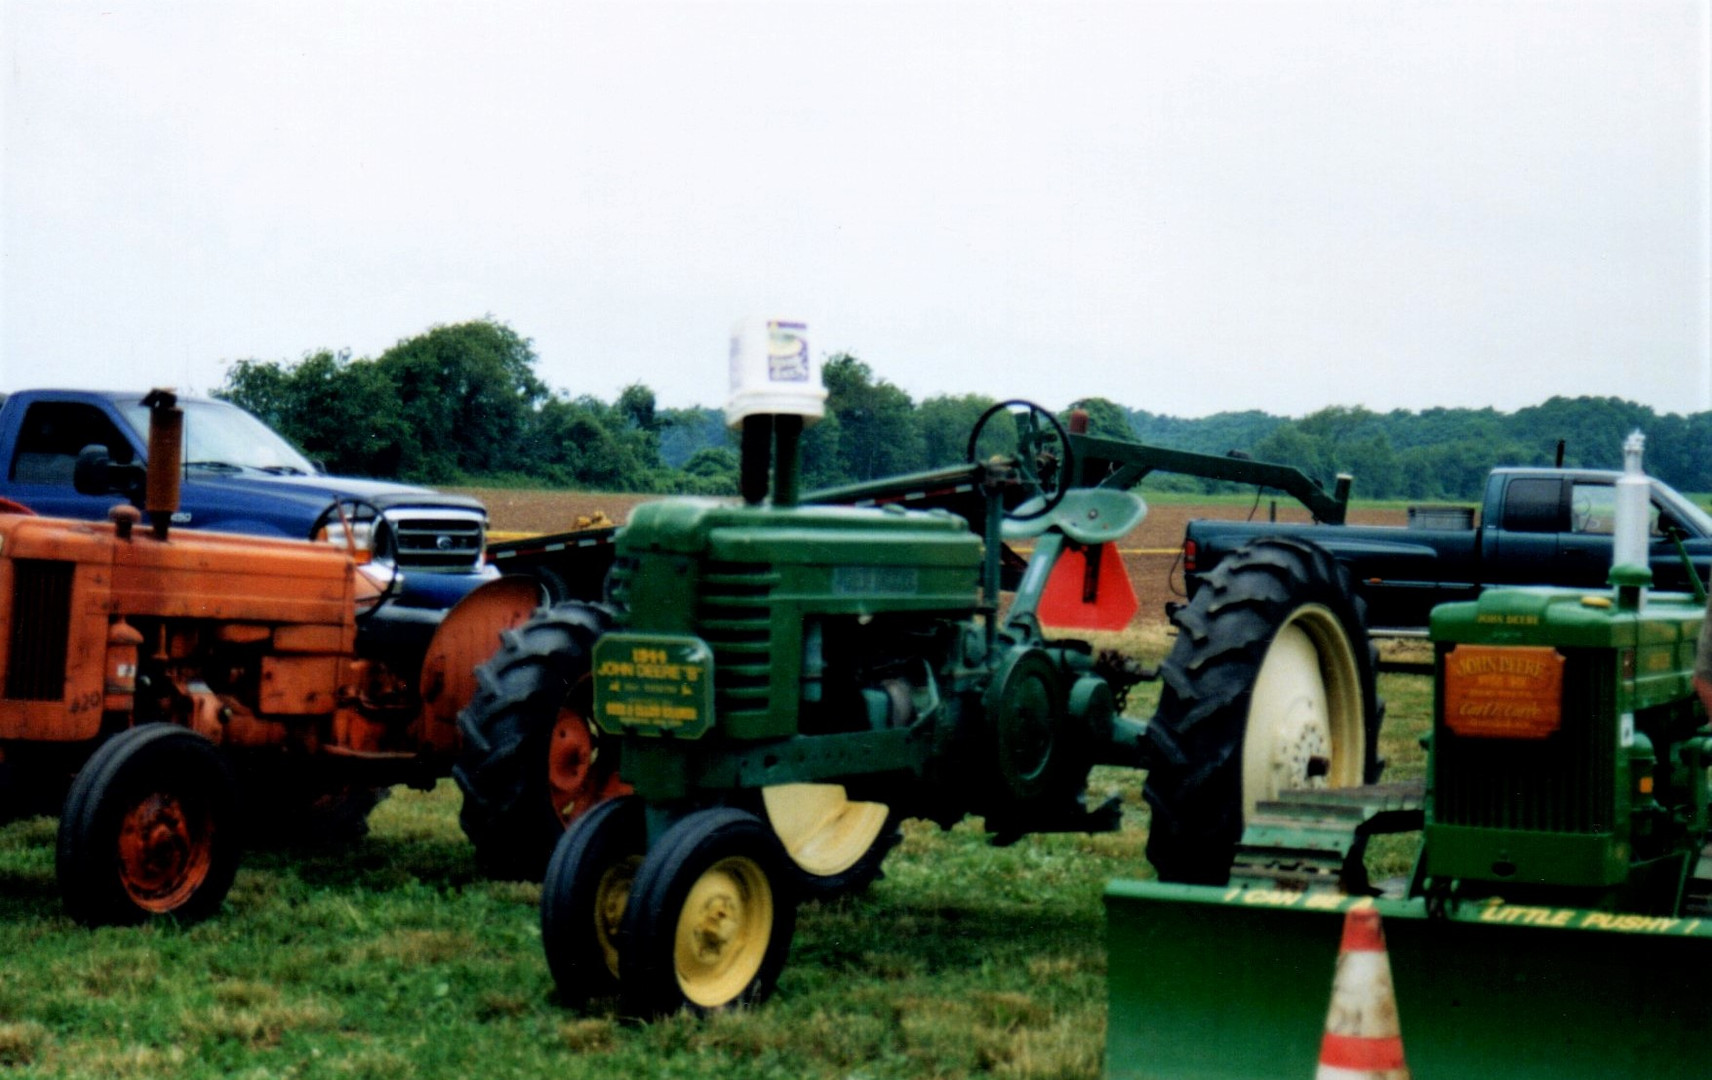 Tractors & crawler on the field